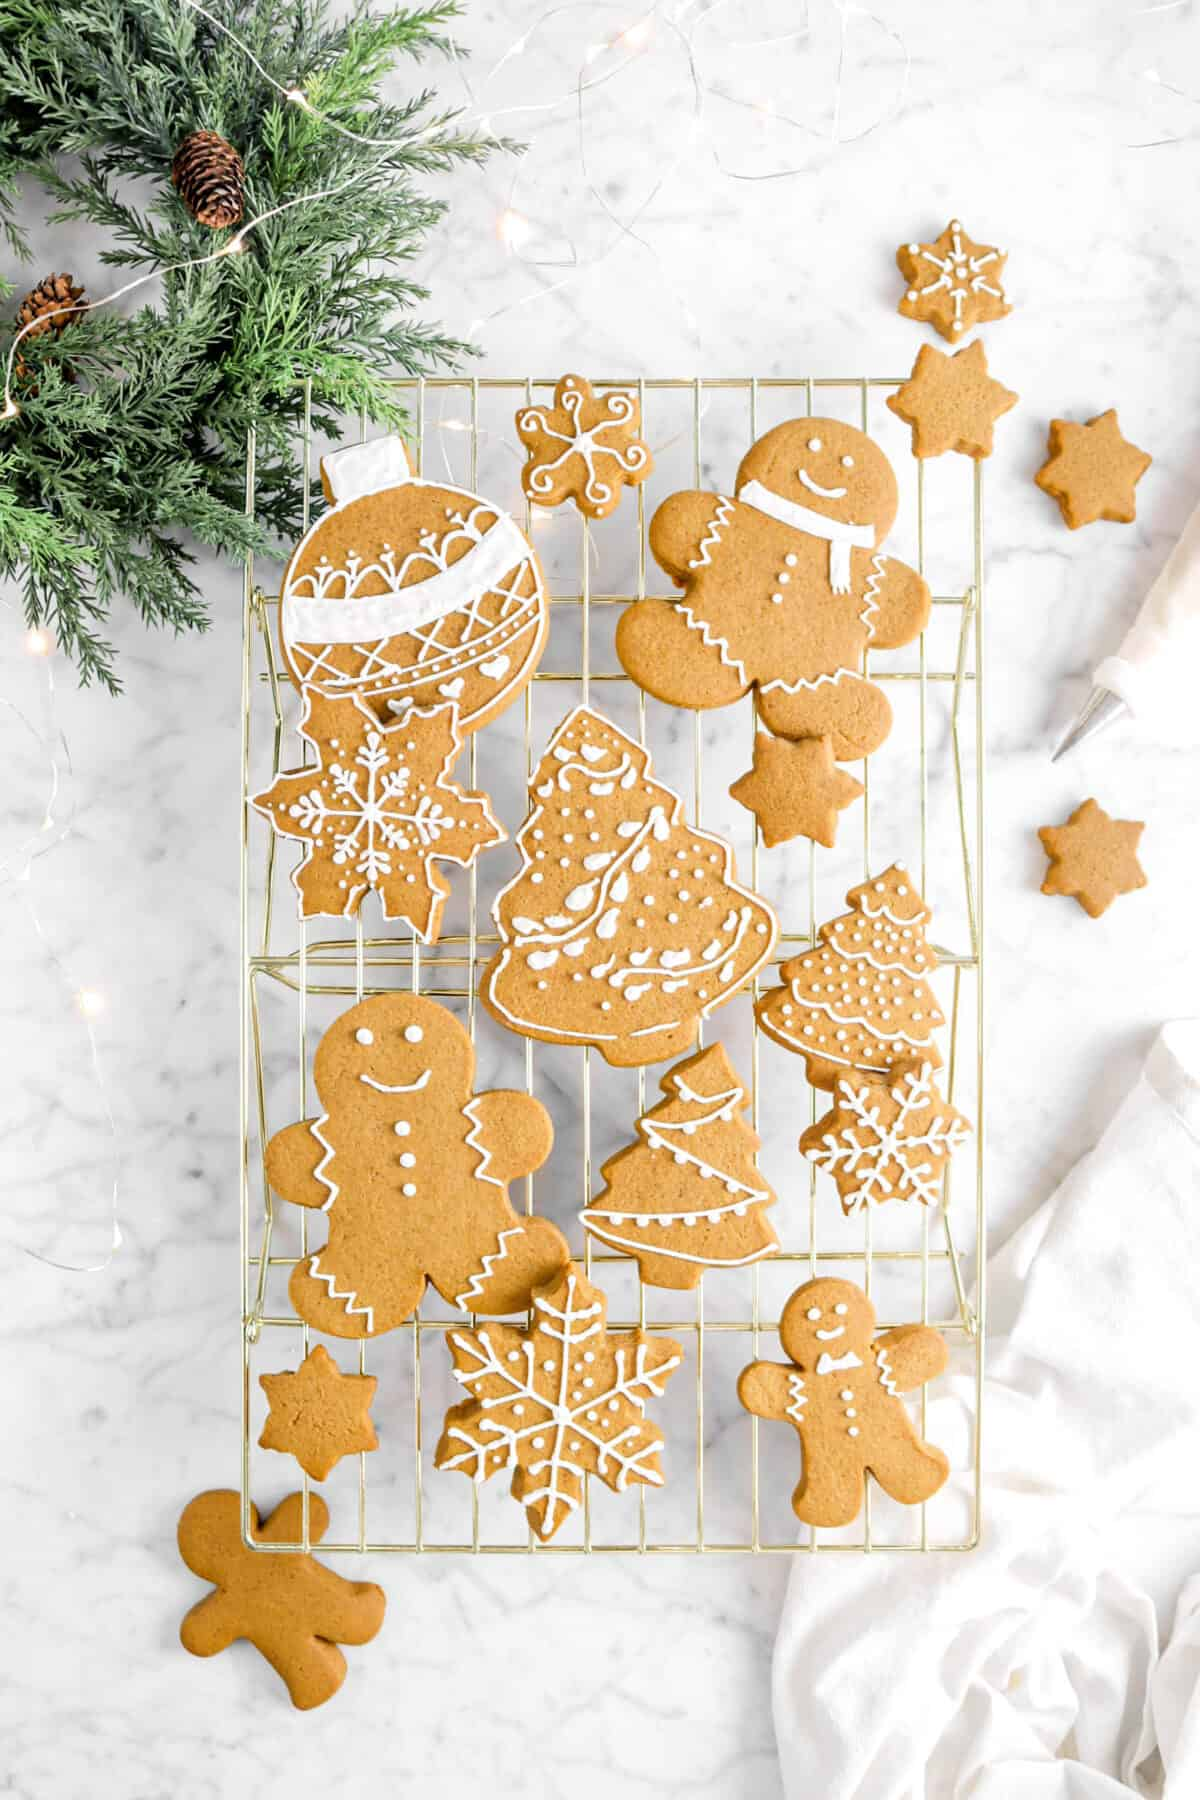 iced gingerbread cookies on gold cooling rack with napkin, greenery, lights, and piping bag